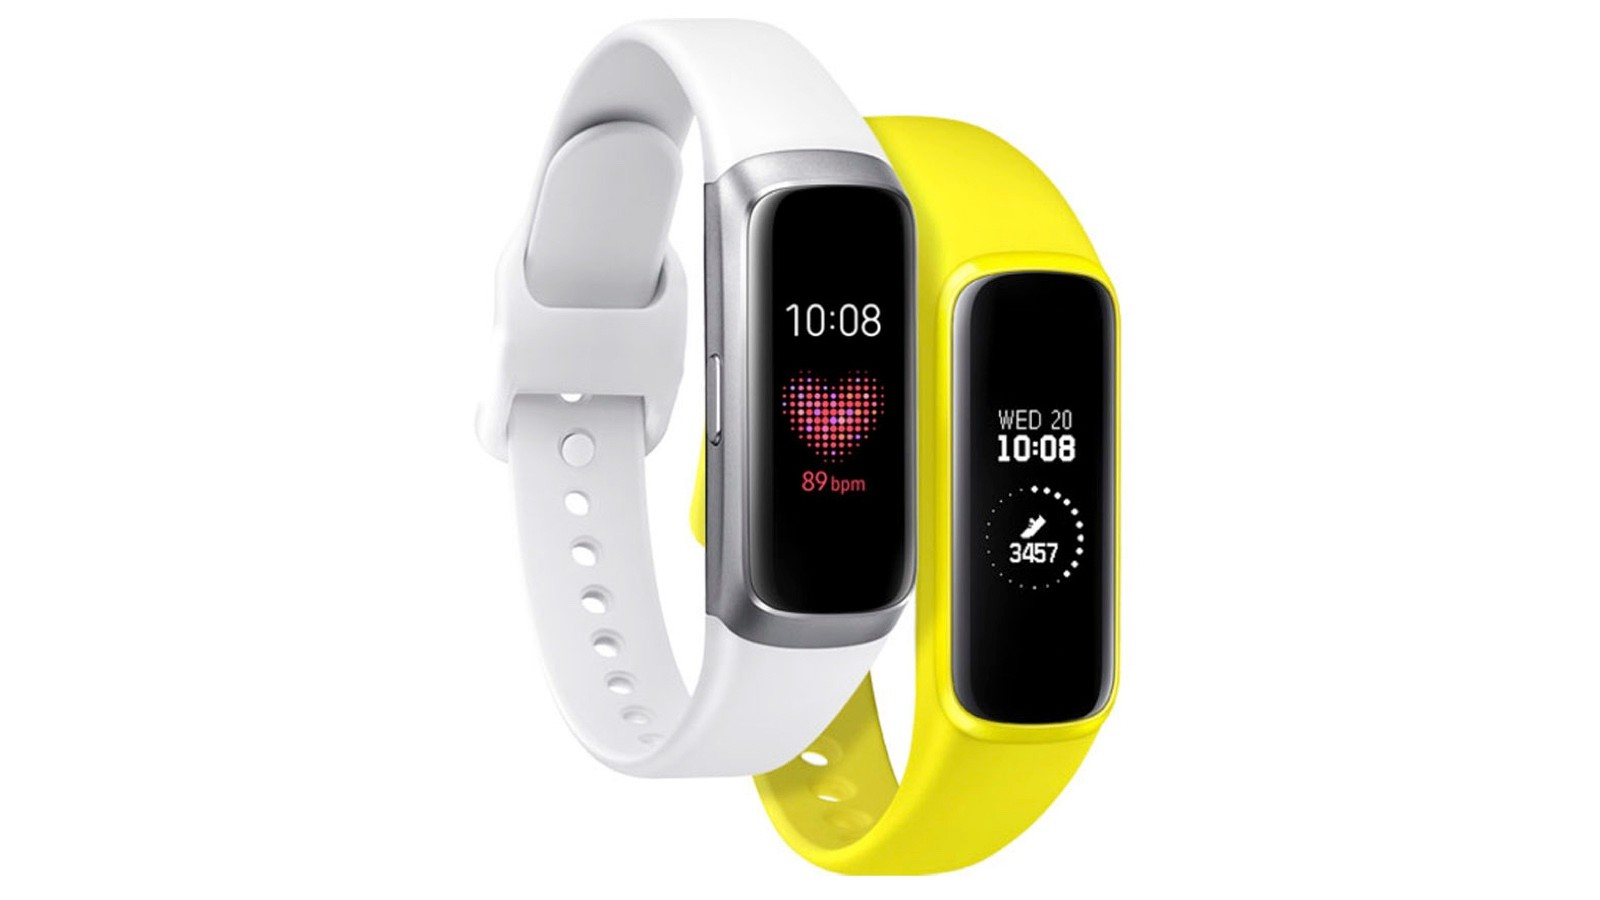 The compact trackers feature built-in optical heart rate and Bluetooth connectivity